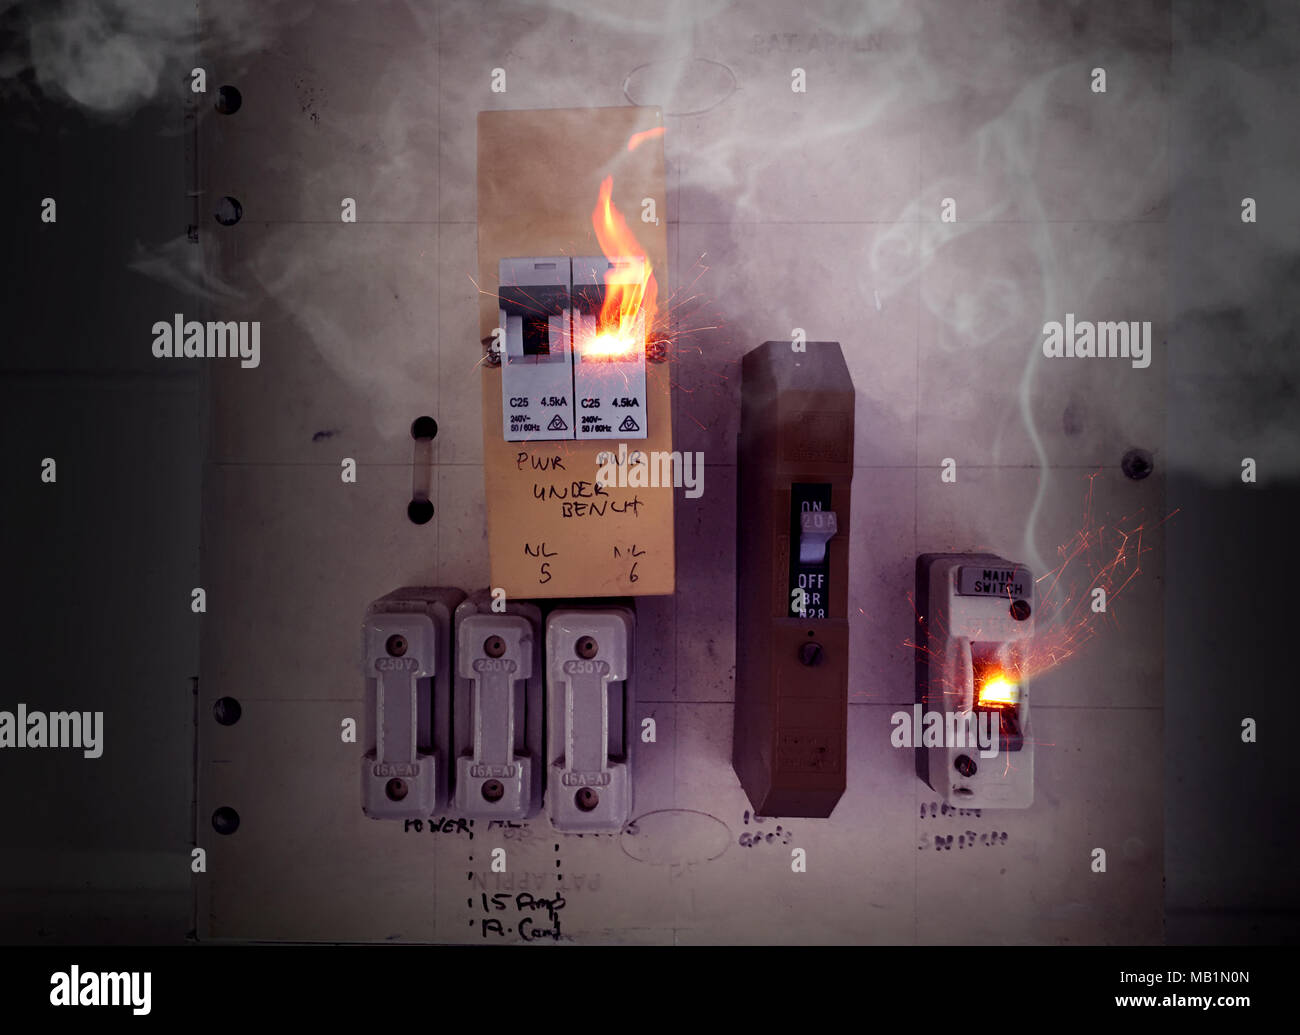 hight resolution of sparks and flames coming from an old electrical switch box causing a fire stock image